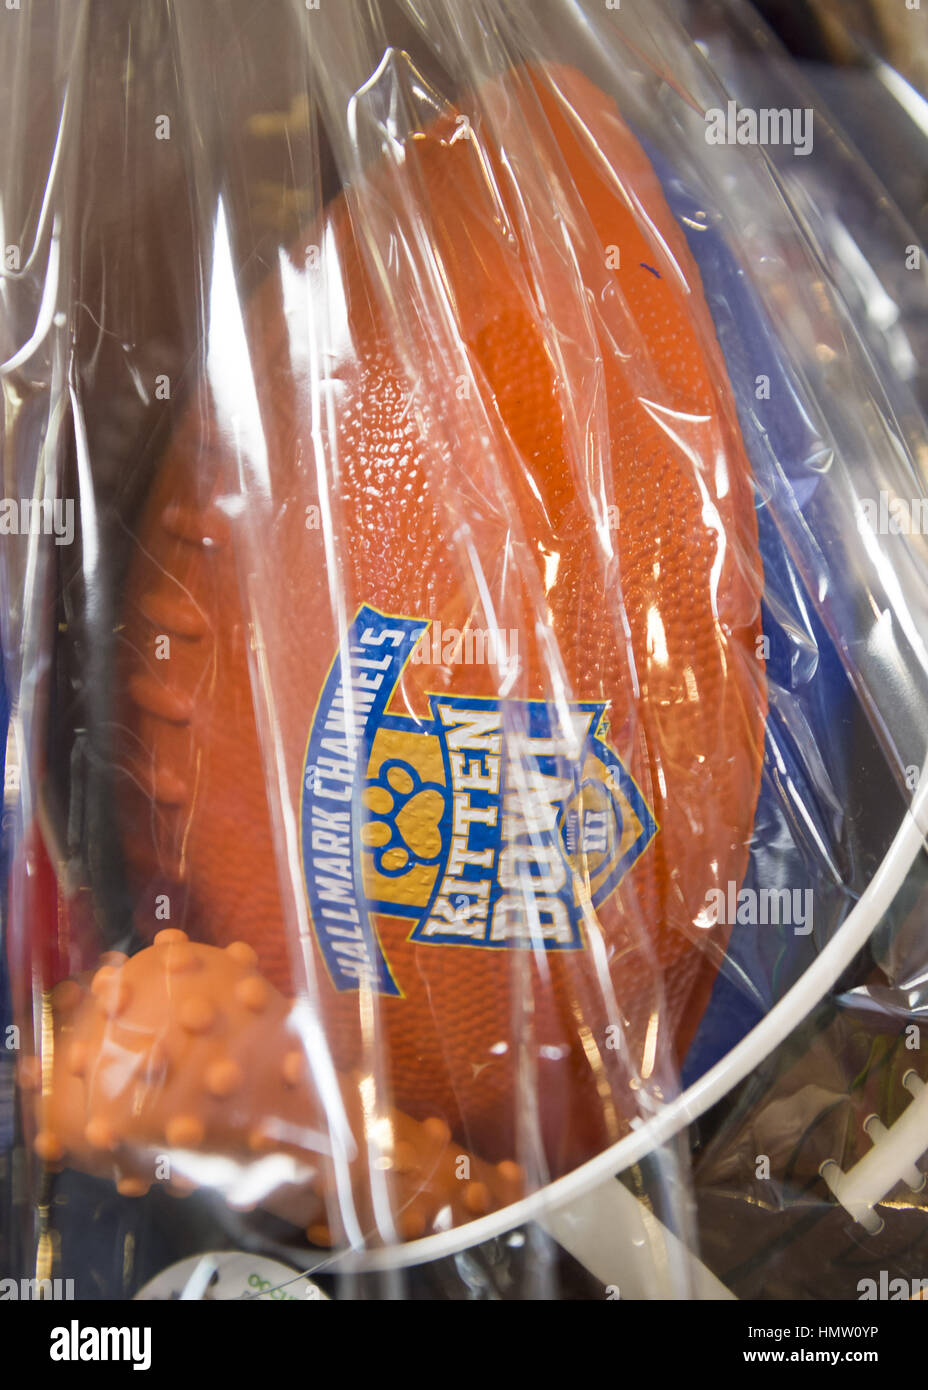 Wantagh, New York, USA. 5th Feb, 2017. A gift basket filled with Kitten Bowl and NY orange and blue football game - Stock Image